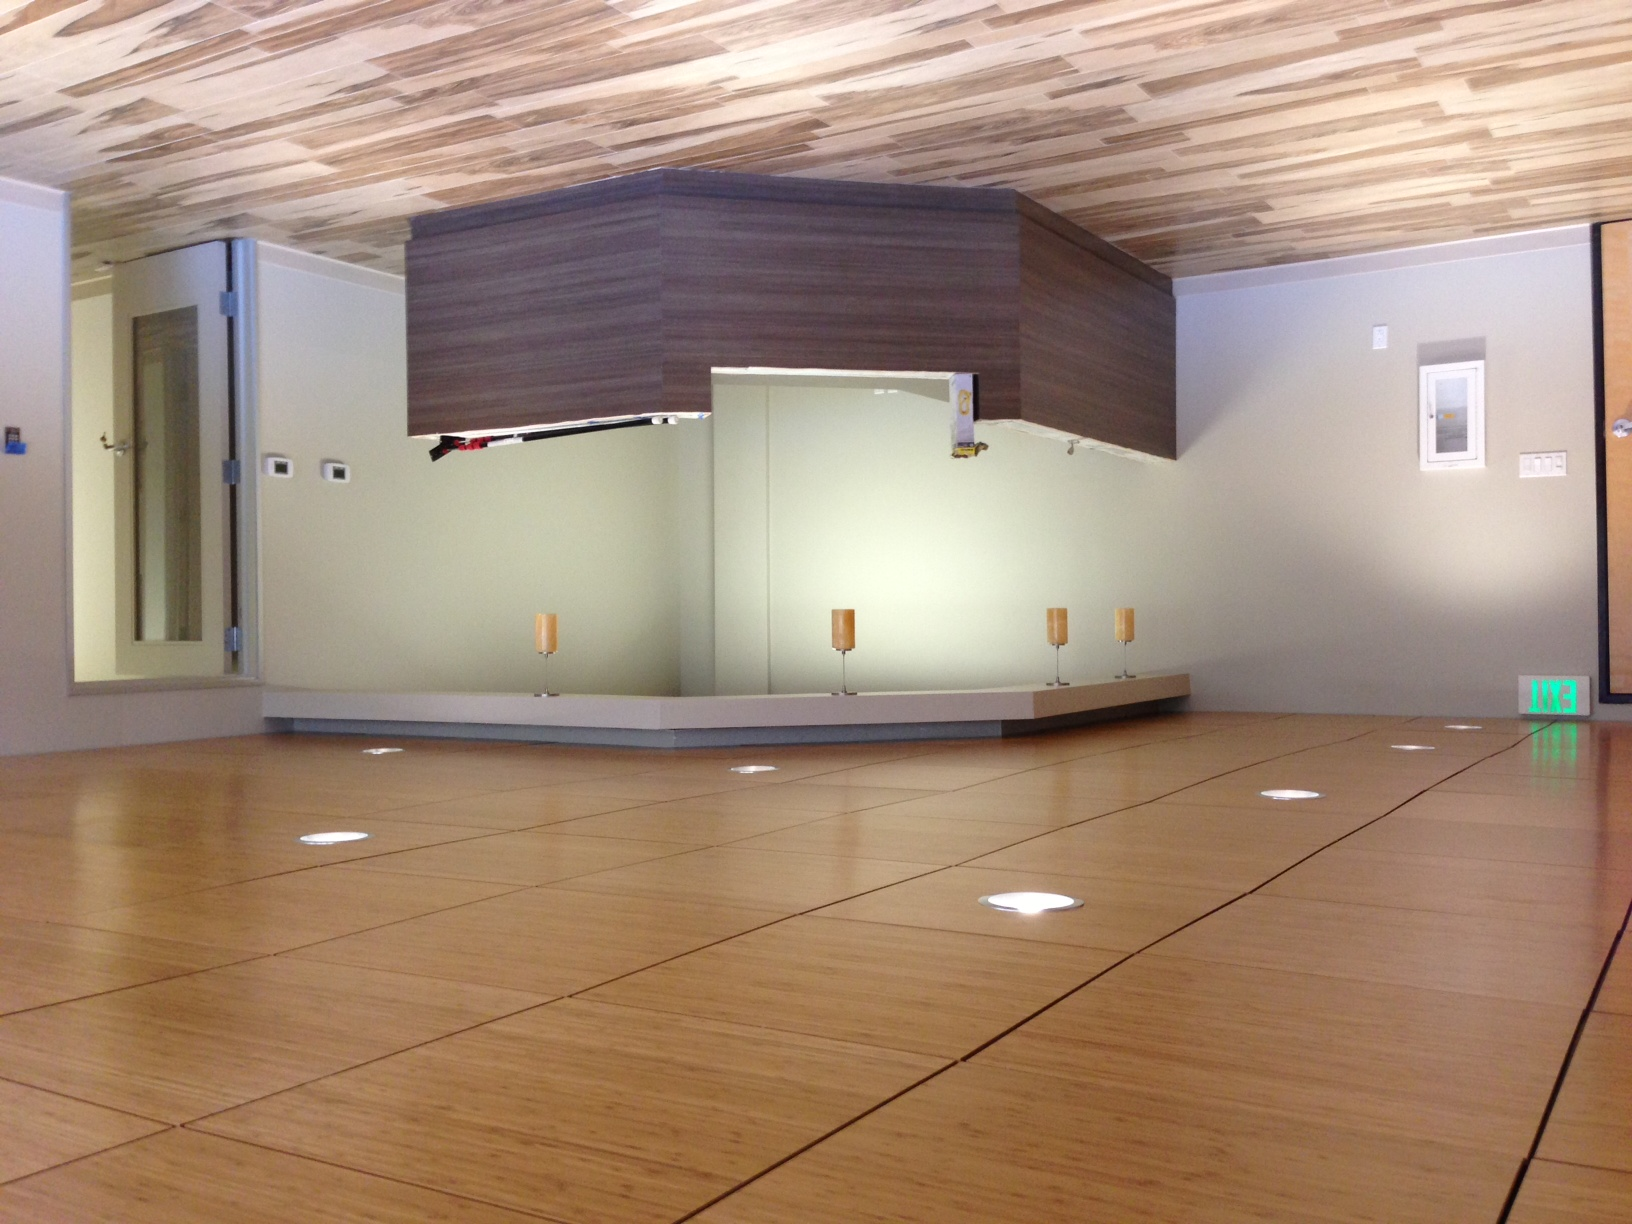 Acoustical Ceiling Tiles - We install t-bar ceiling grid, typically used in commercial settings.